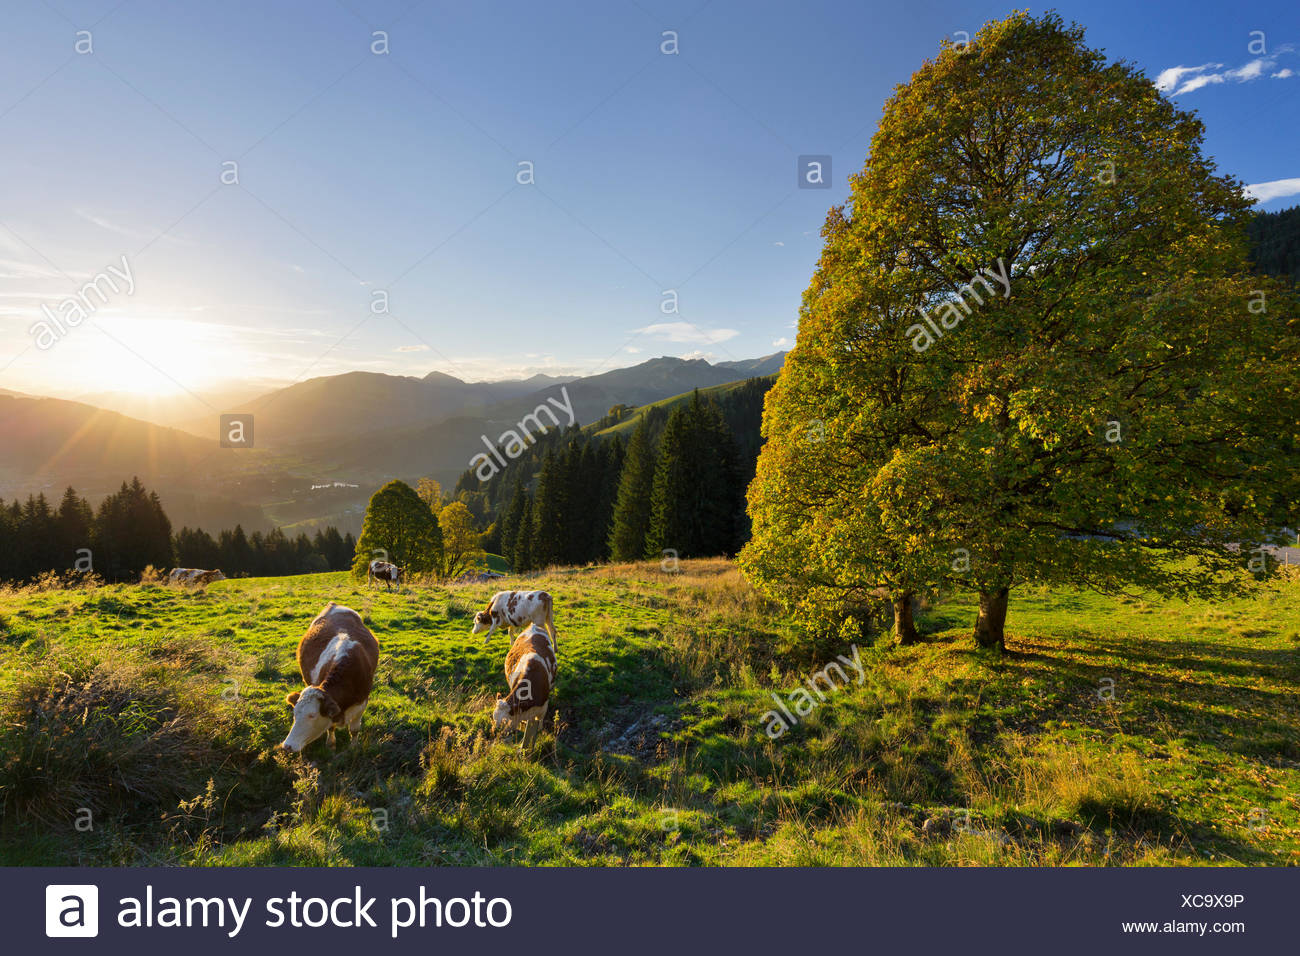 Evening mood at the Kitzbüheler Horn, harewood, Tyrol, Austria - Stock Image